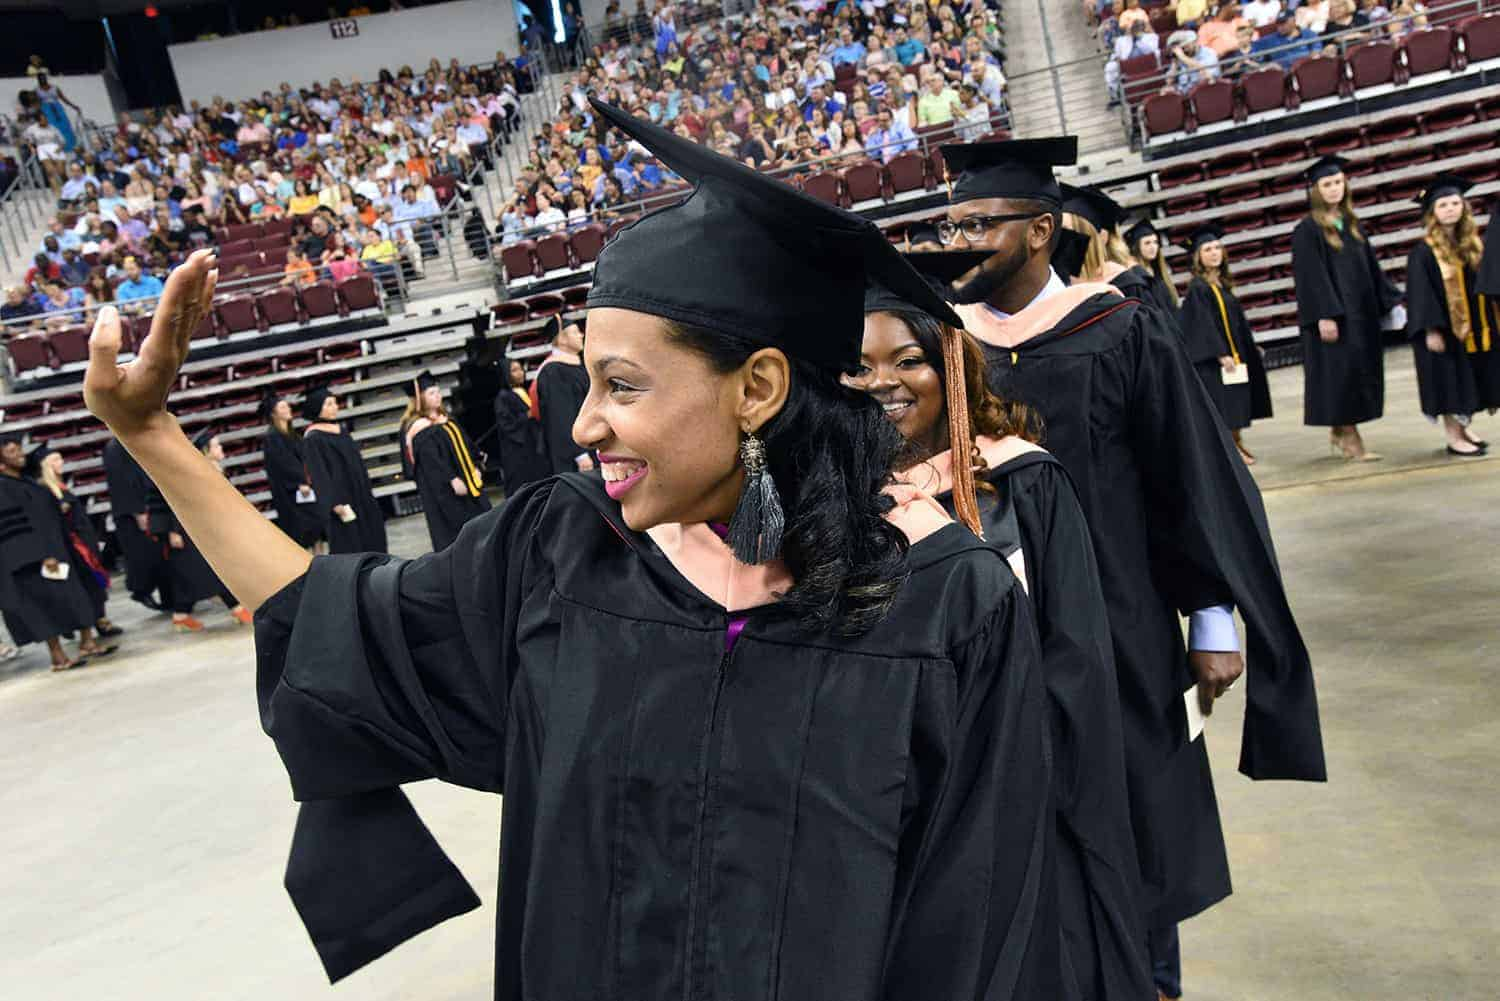 UAMS celebrated 969 new health care professionals at its 2018 commencement ceremony May 19 at Verizon Arena in North Little Rock.